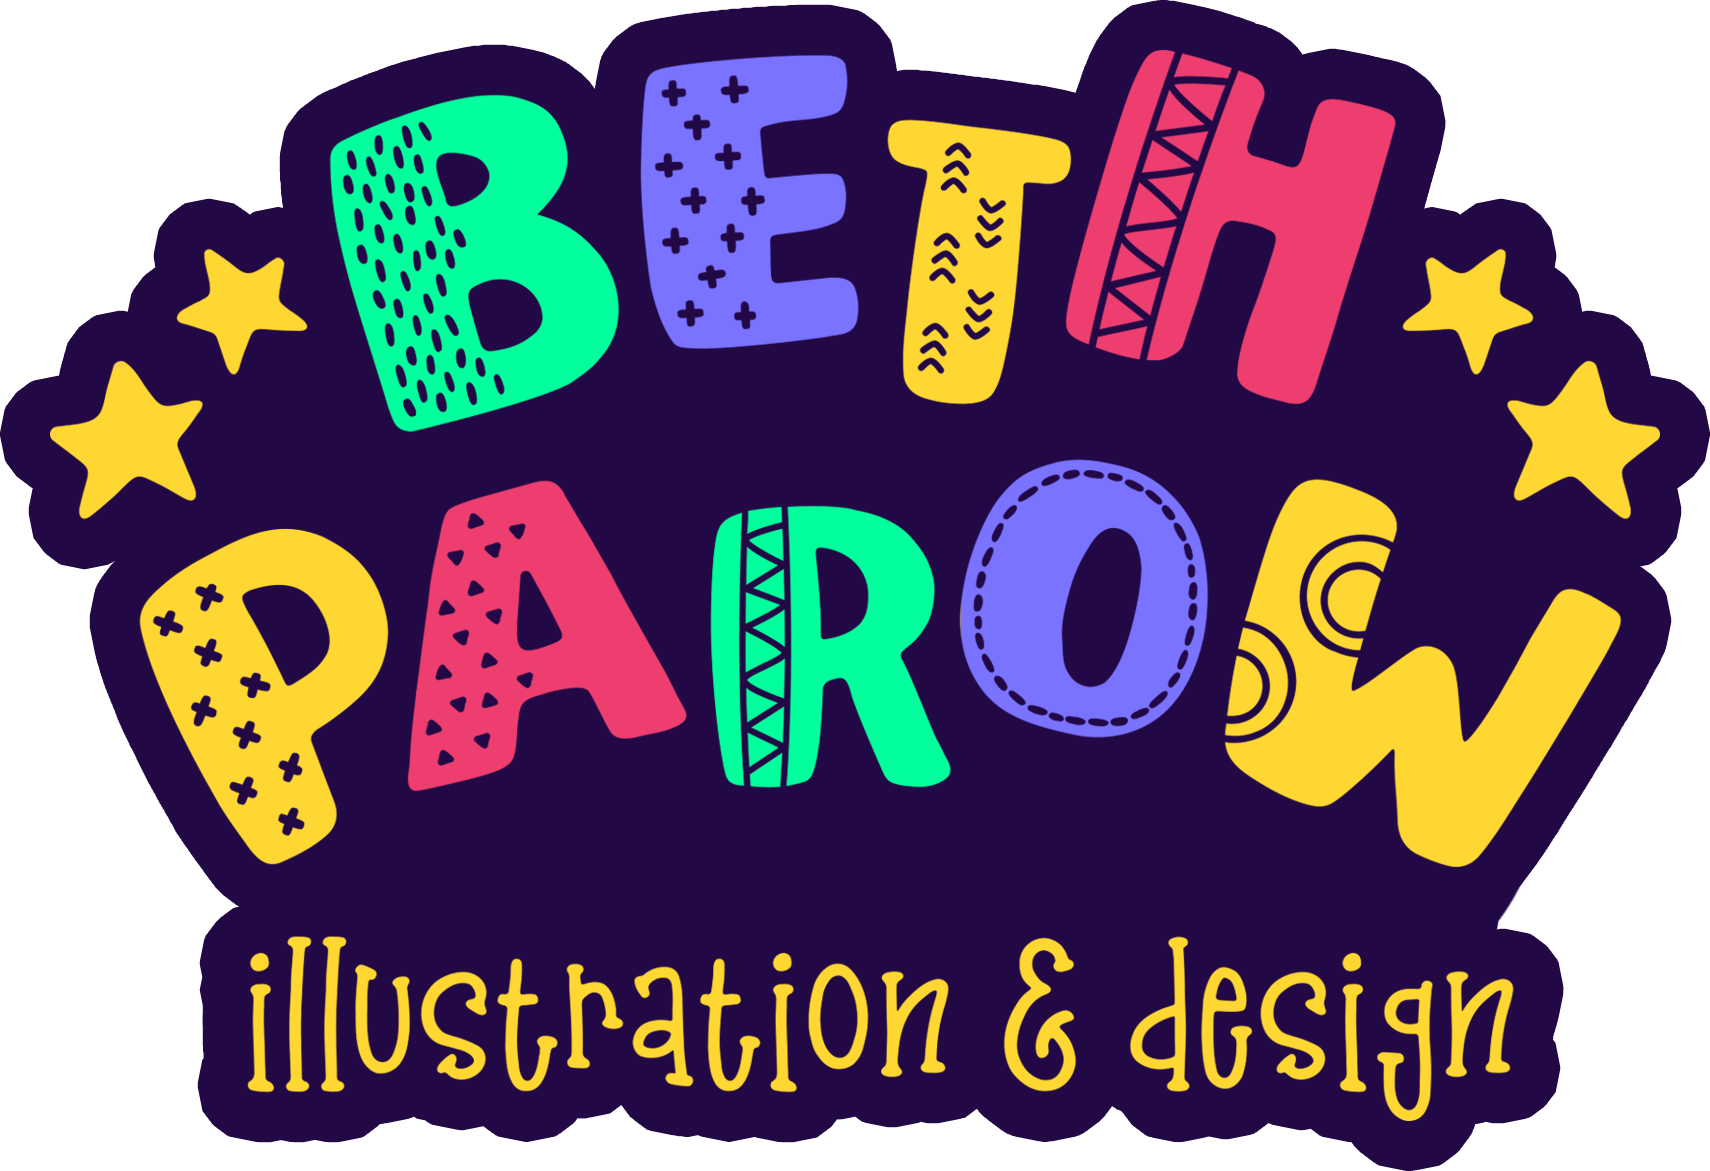 Beth Parow Illustration & Design